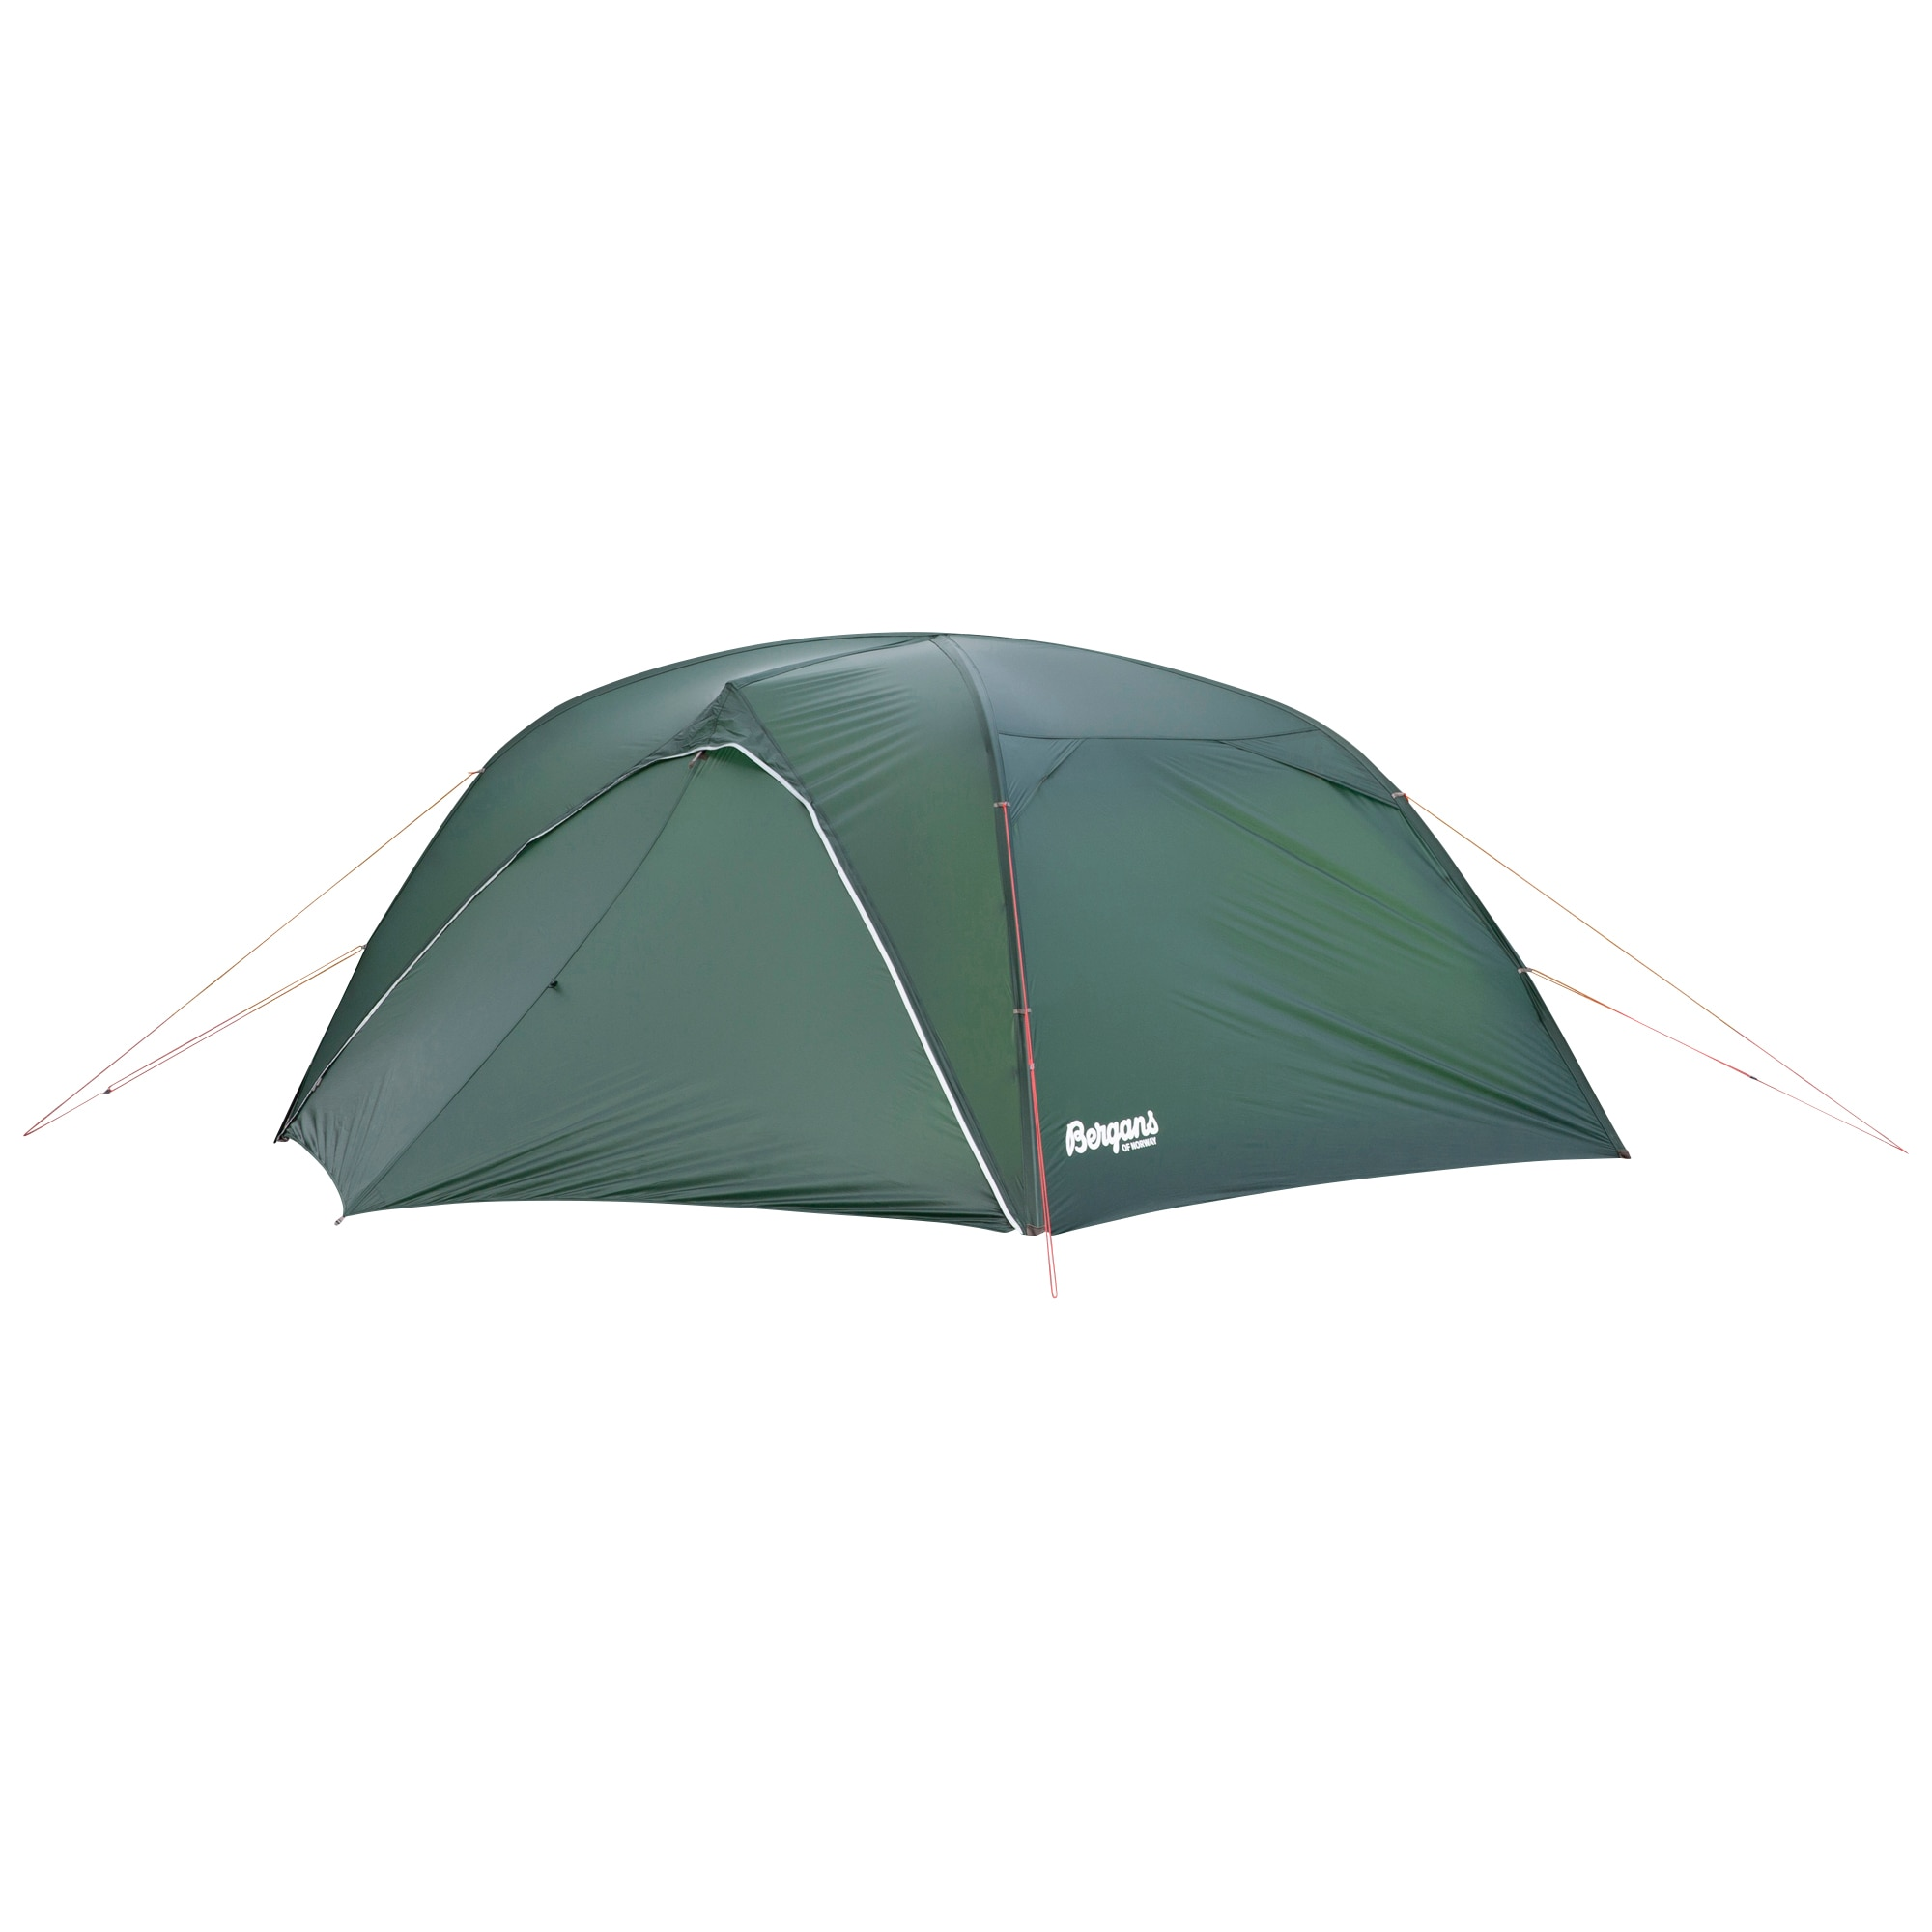 Super Light Dome 3-Persons Tent